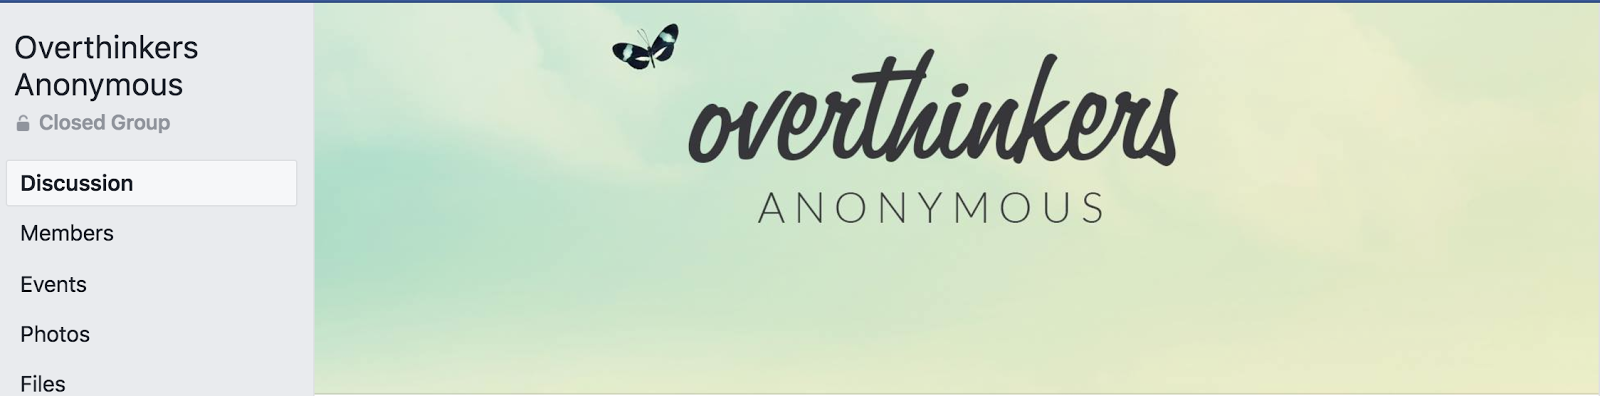 Overthinkers Anonymous.png